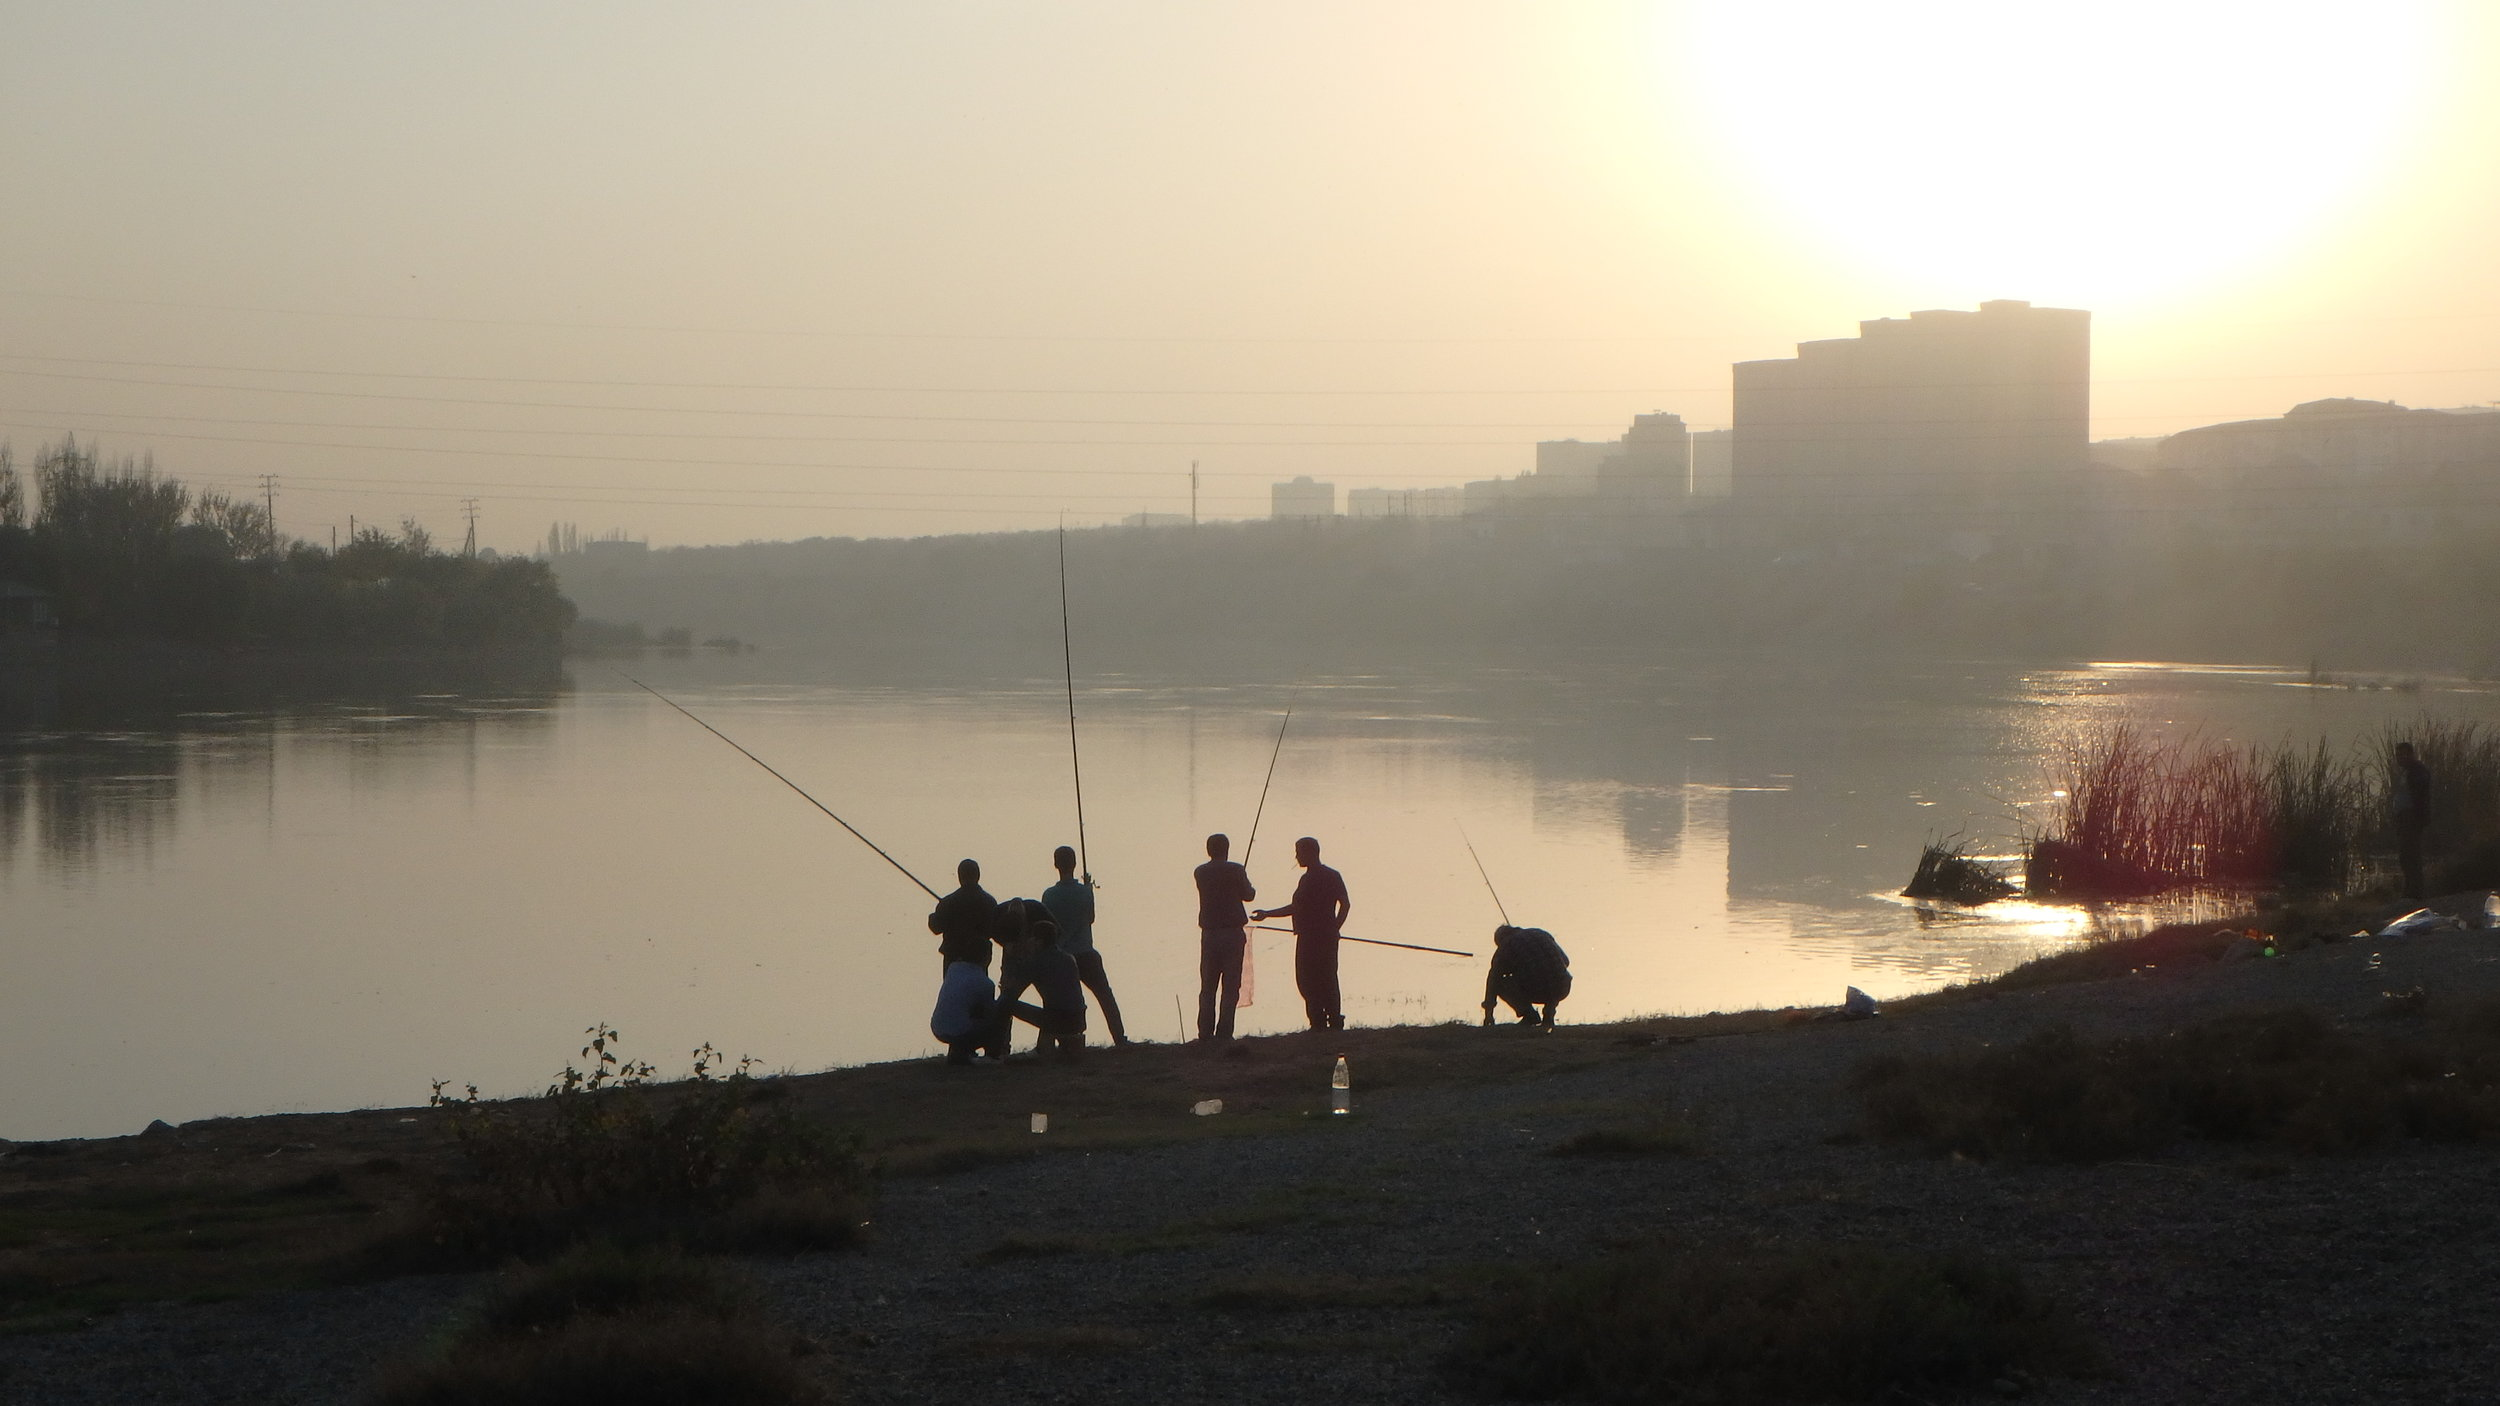 Some serious fishing on the Syr Darya River, Khujand.